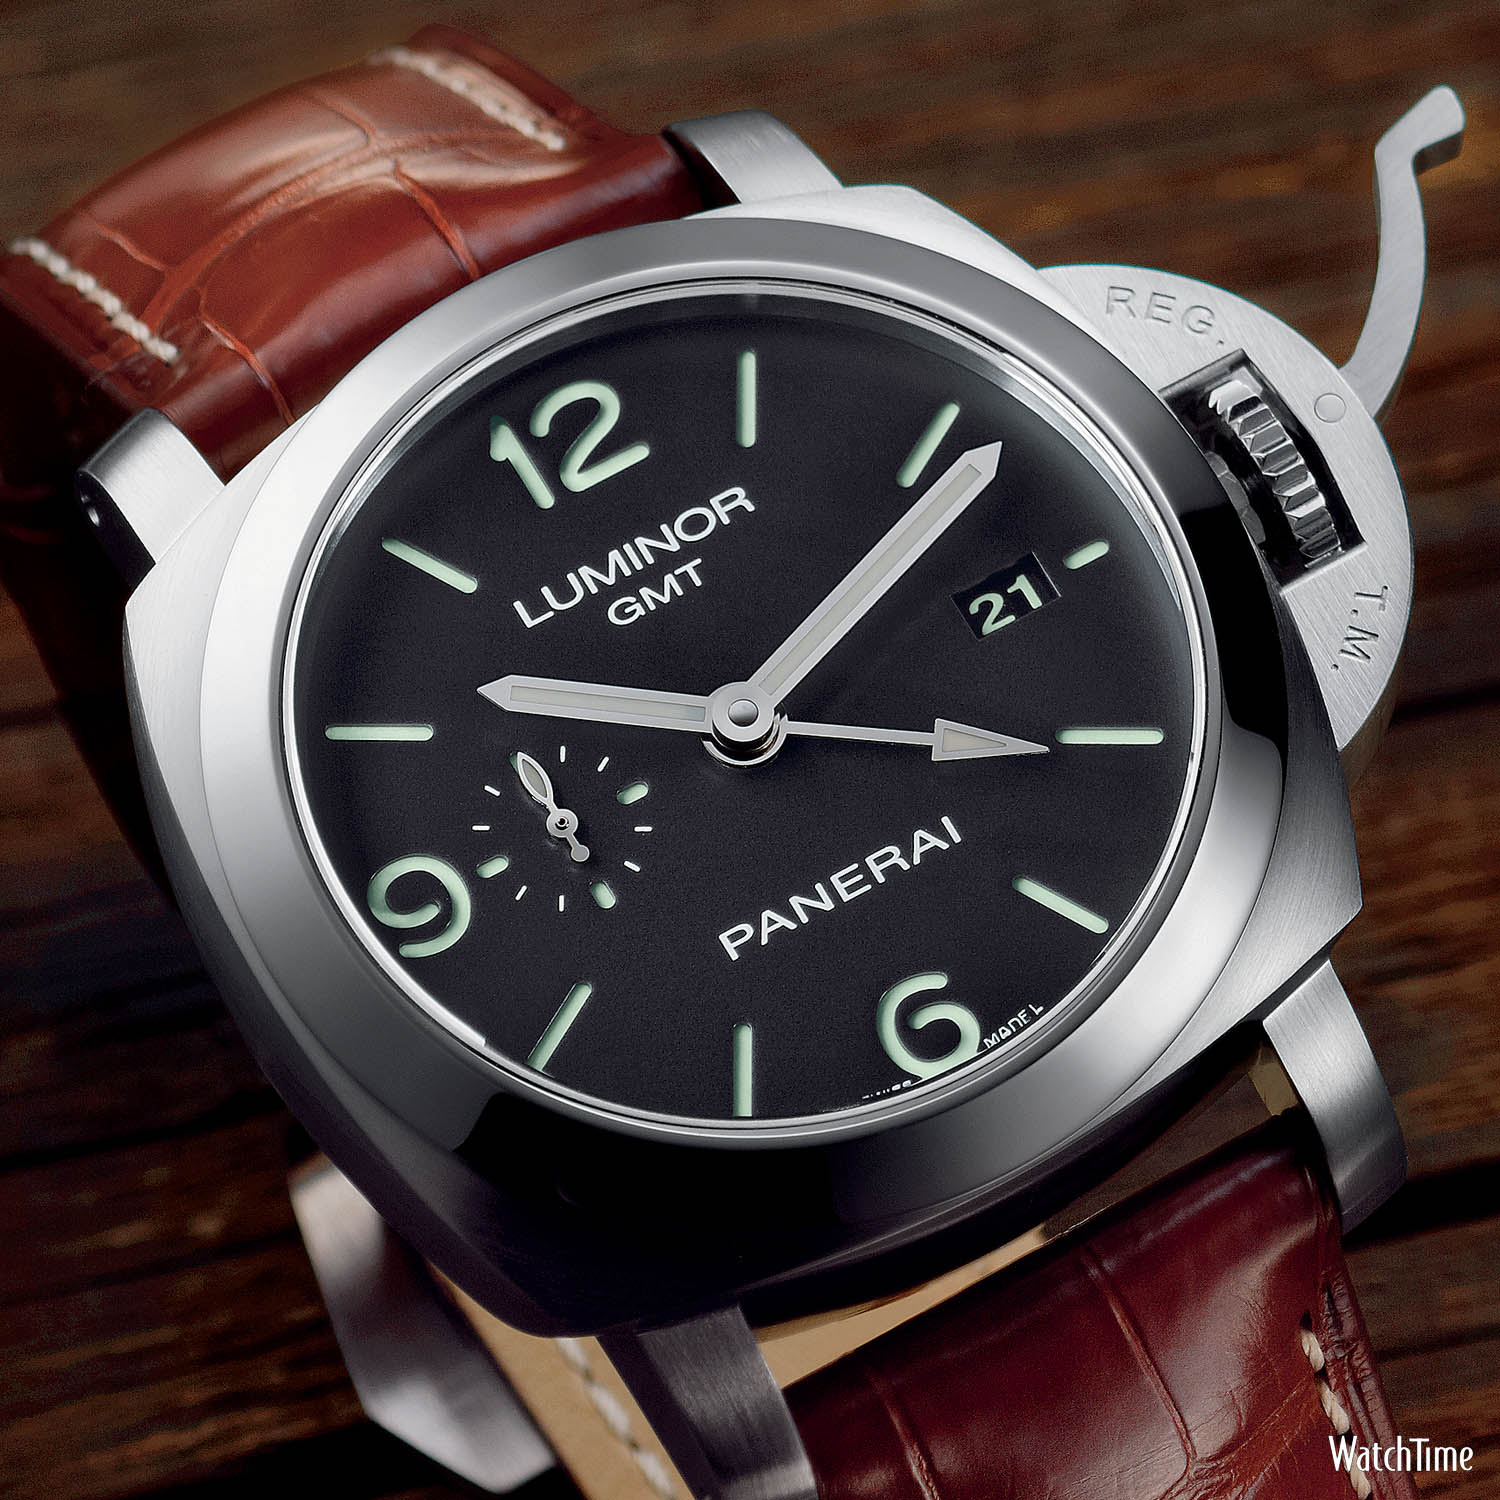 Panerai Luminor 1950 3 Days GMT - PAM 320 - 6